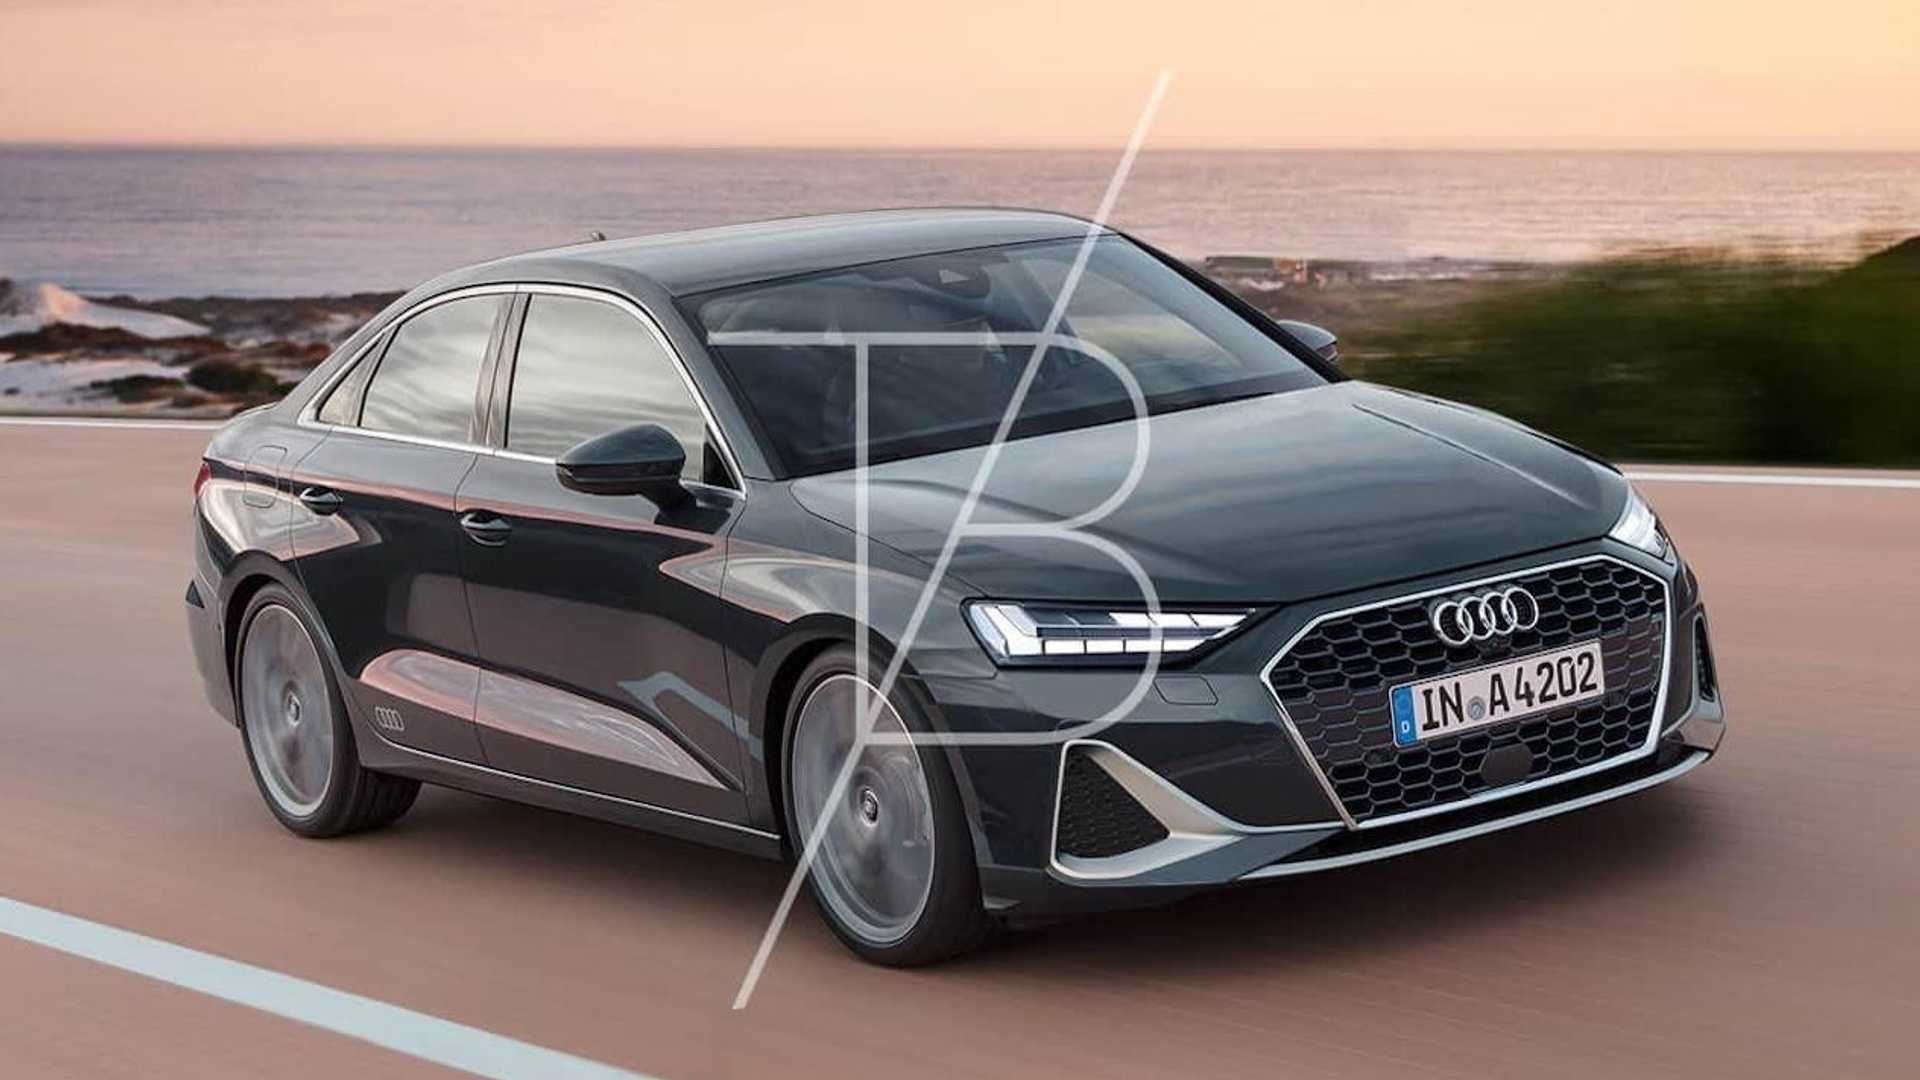 4 Audi A4 Renderings Preview An Evolutionary Design Update